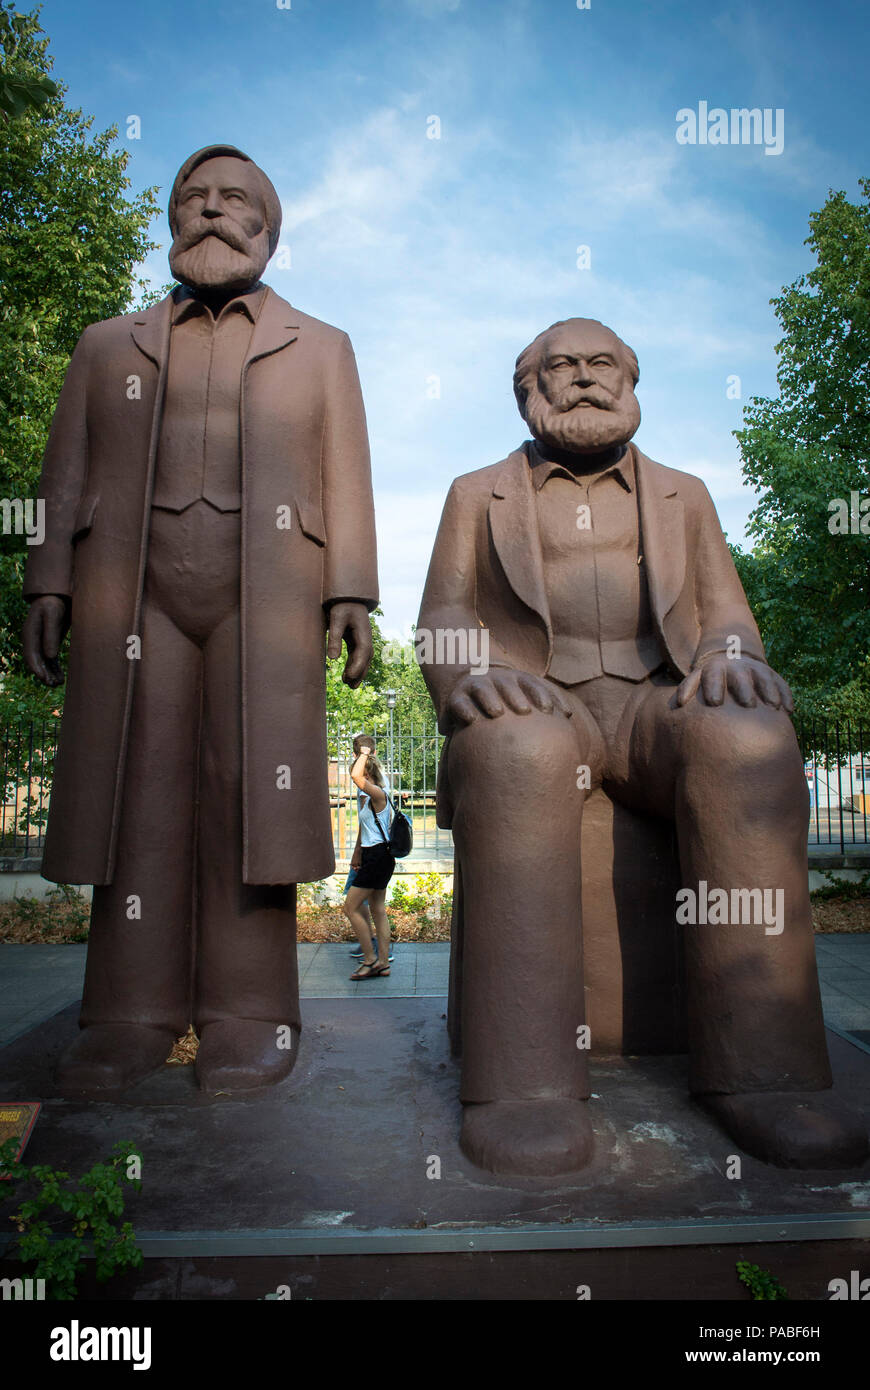 Giants Marx and Engels statues at Filmpark Babelsberg, Potsdam, Germany. - Stock Image